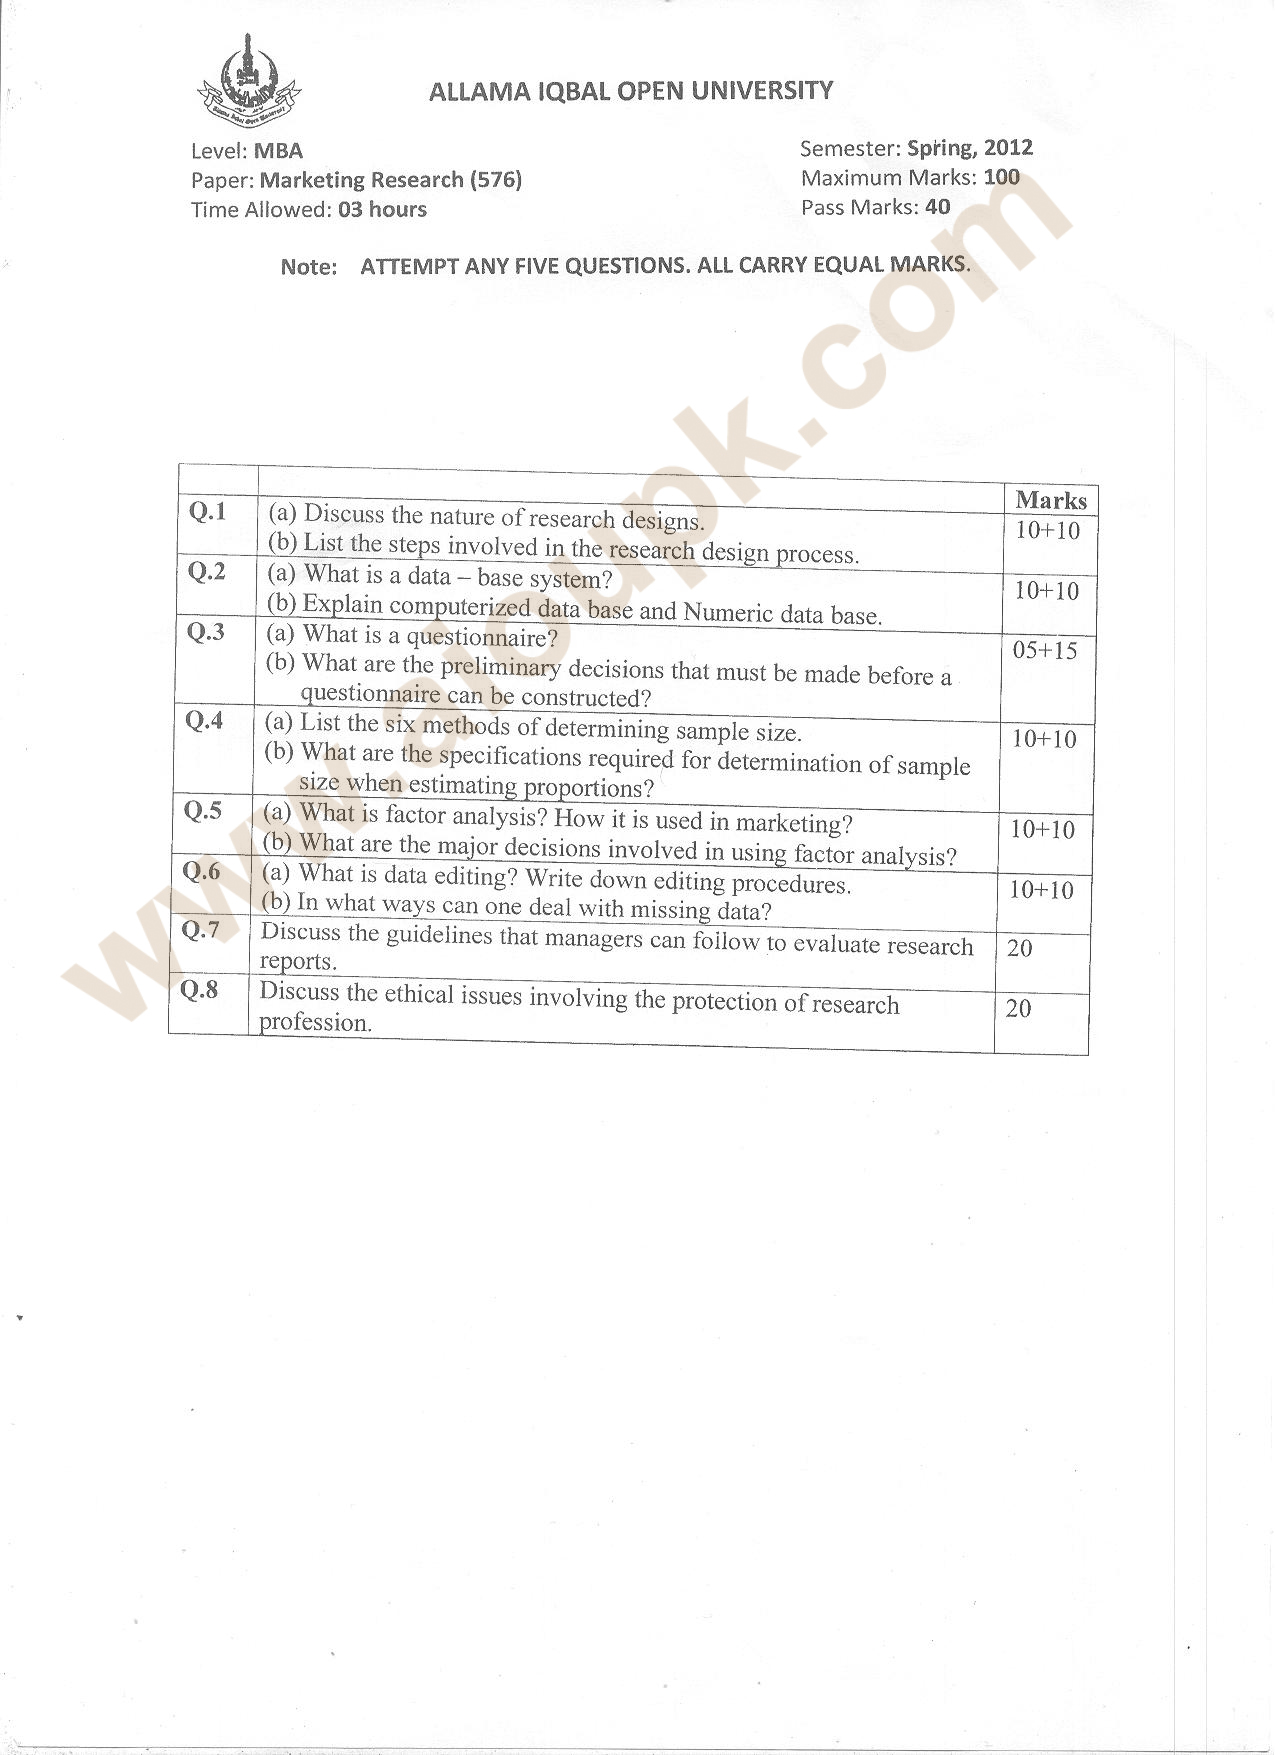 Marketing Research Code 576 Level MBA, AIOU Old Paper